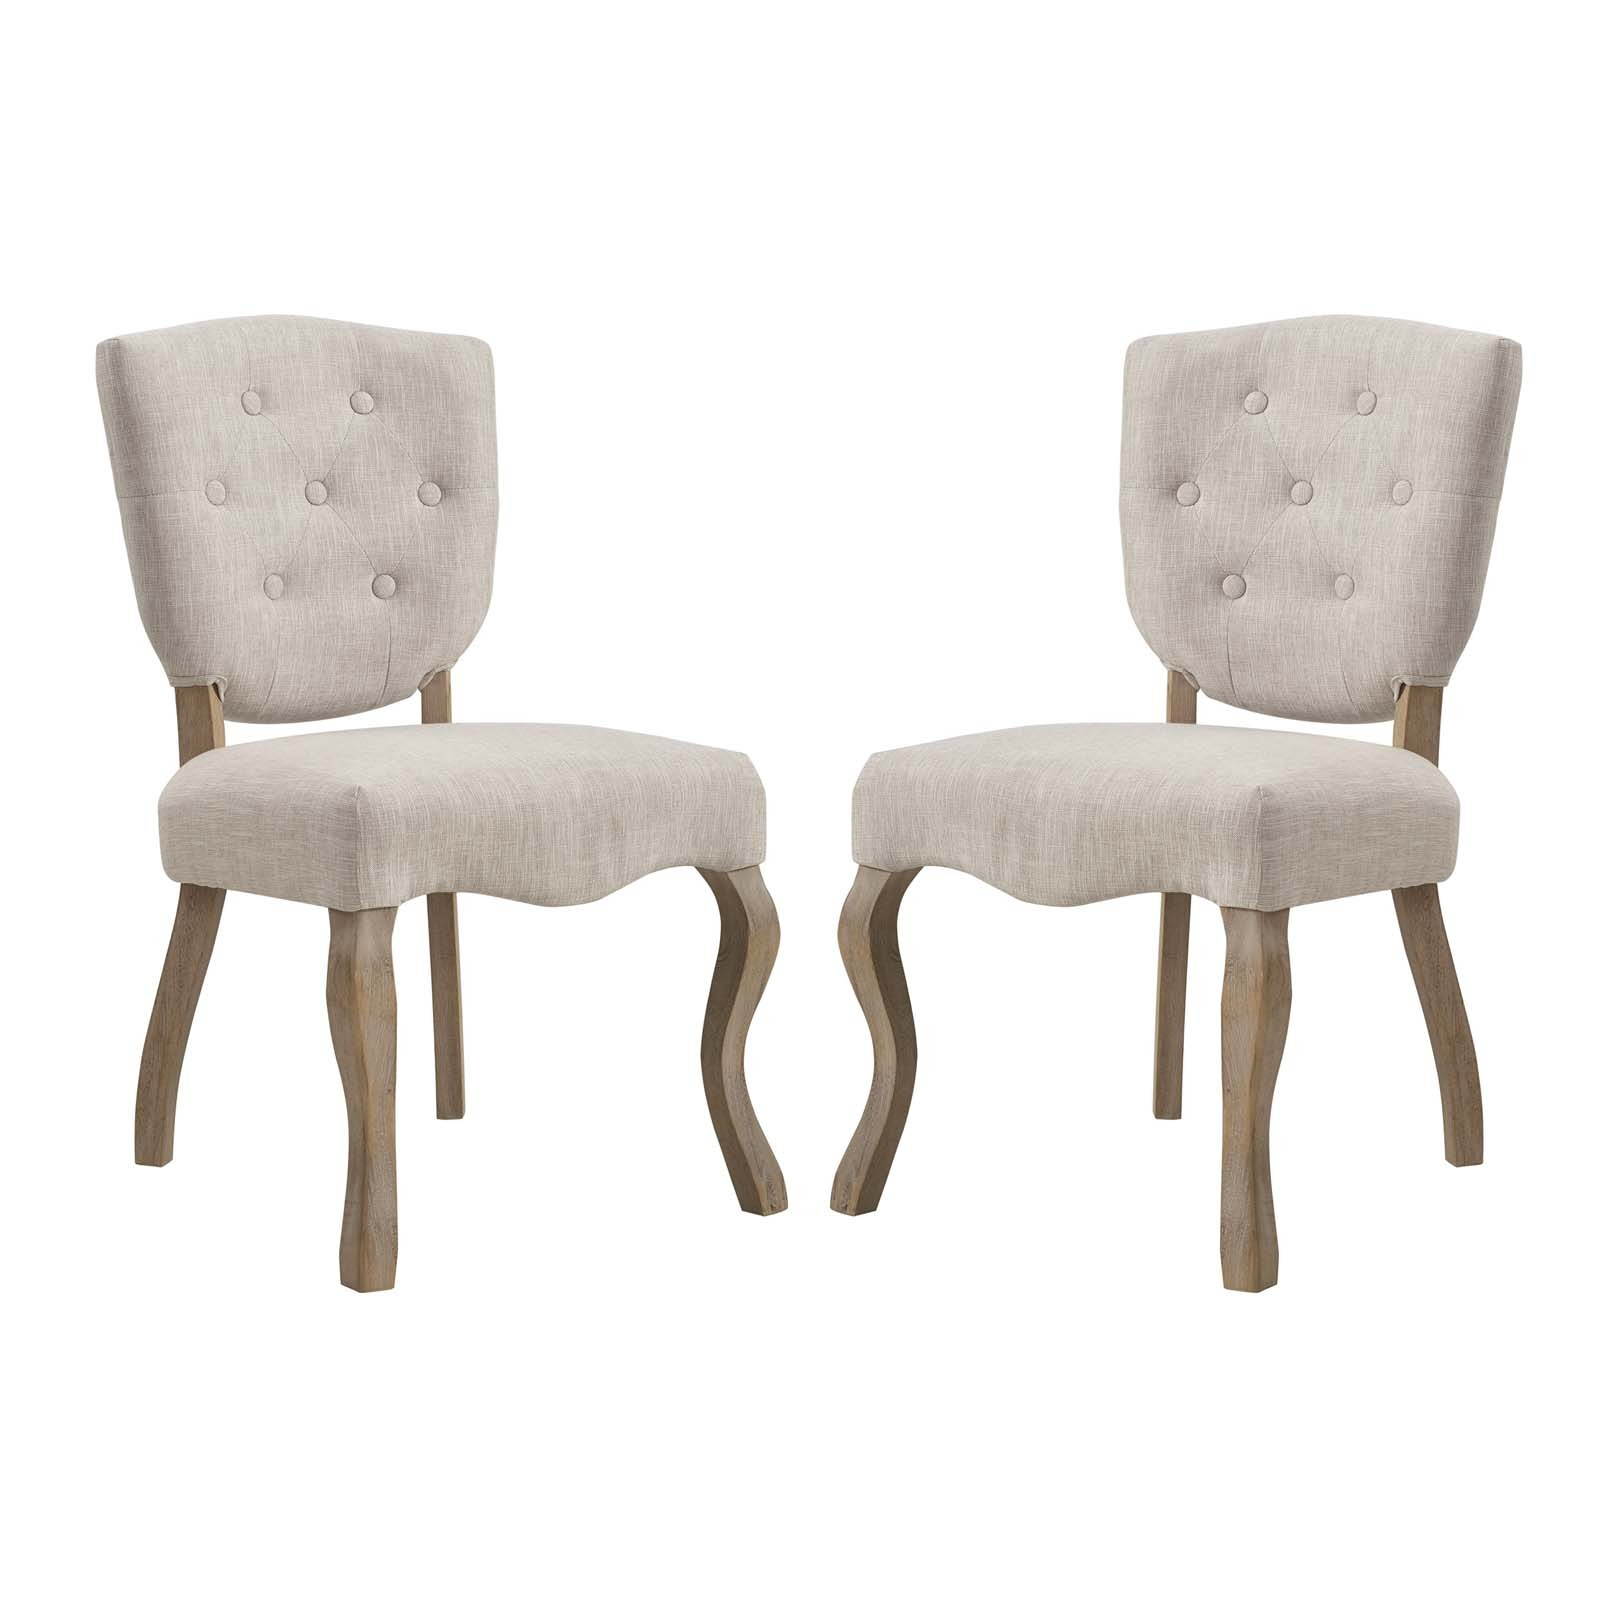 Array Dining Side Chair Set of 2 with Soft Polyester Upholstery